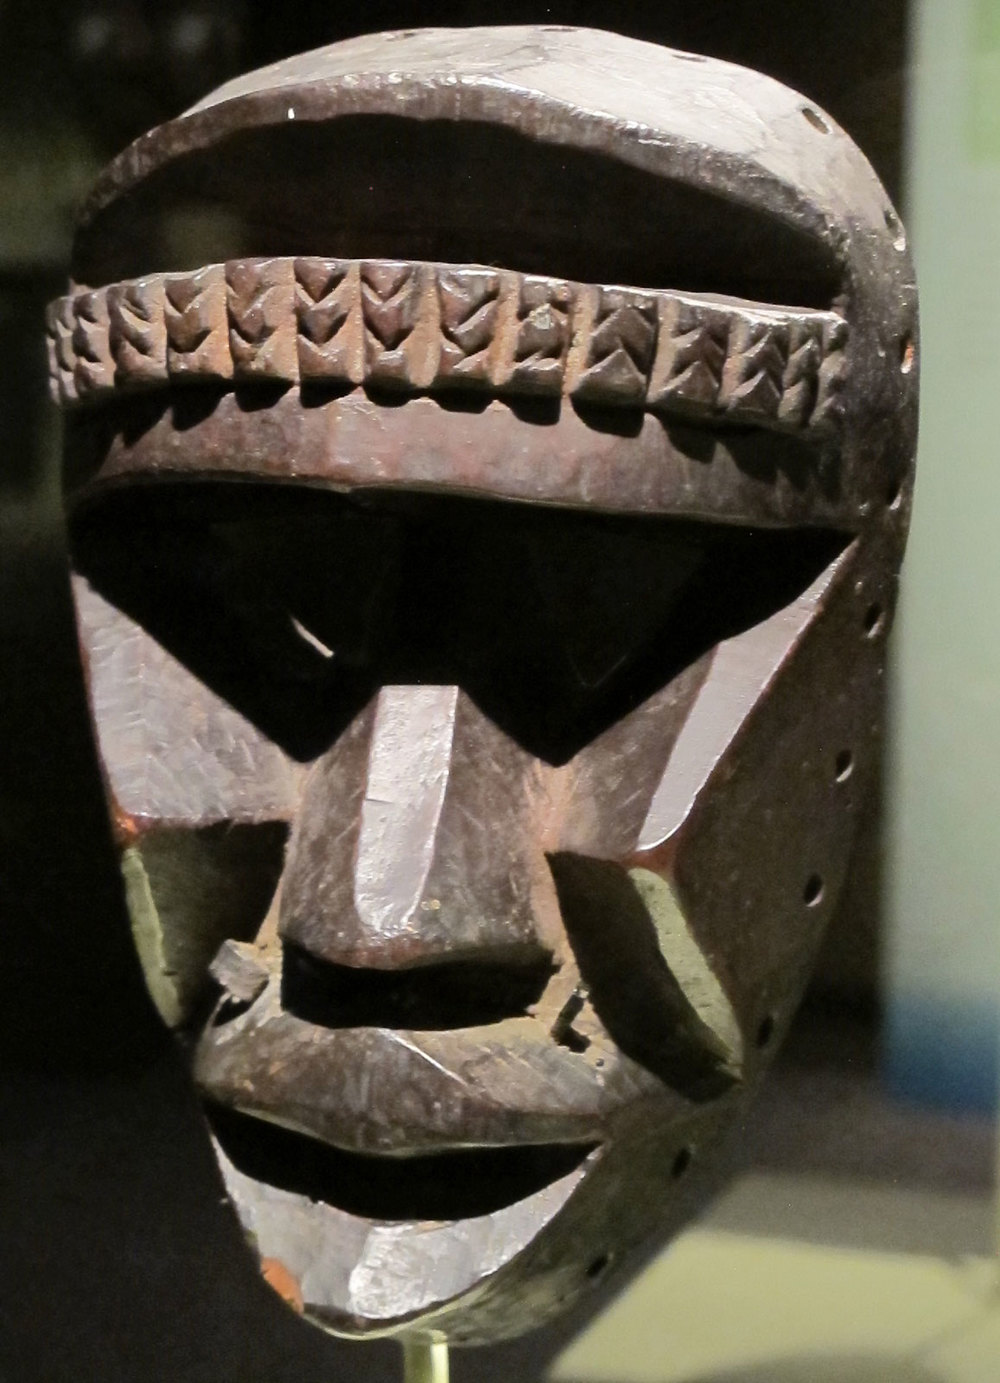 Kagle mask by Dan artist, Liberia, of wood and metal, mid 20th century.